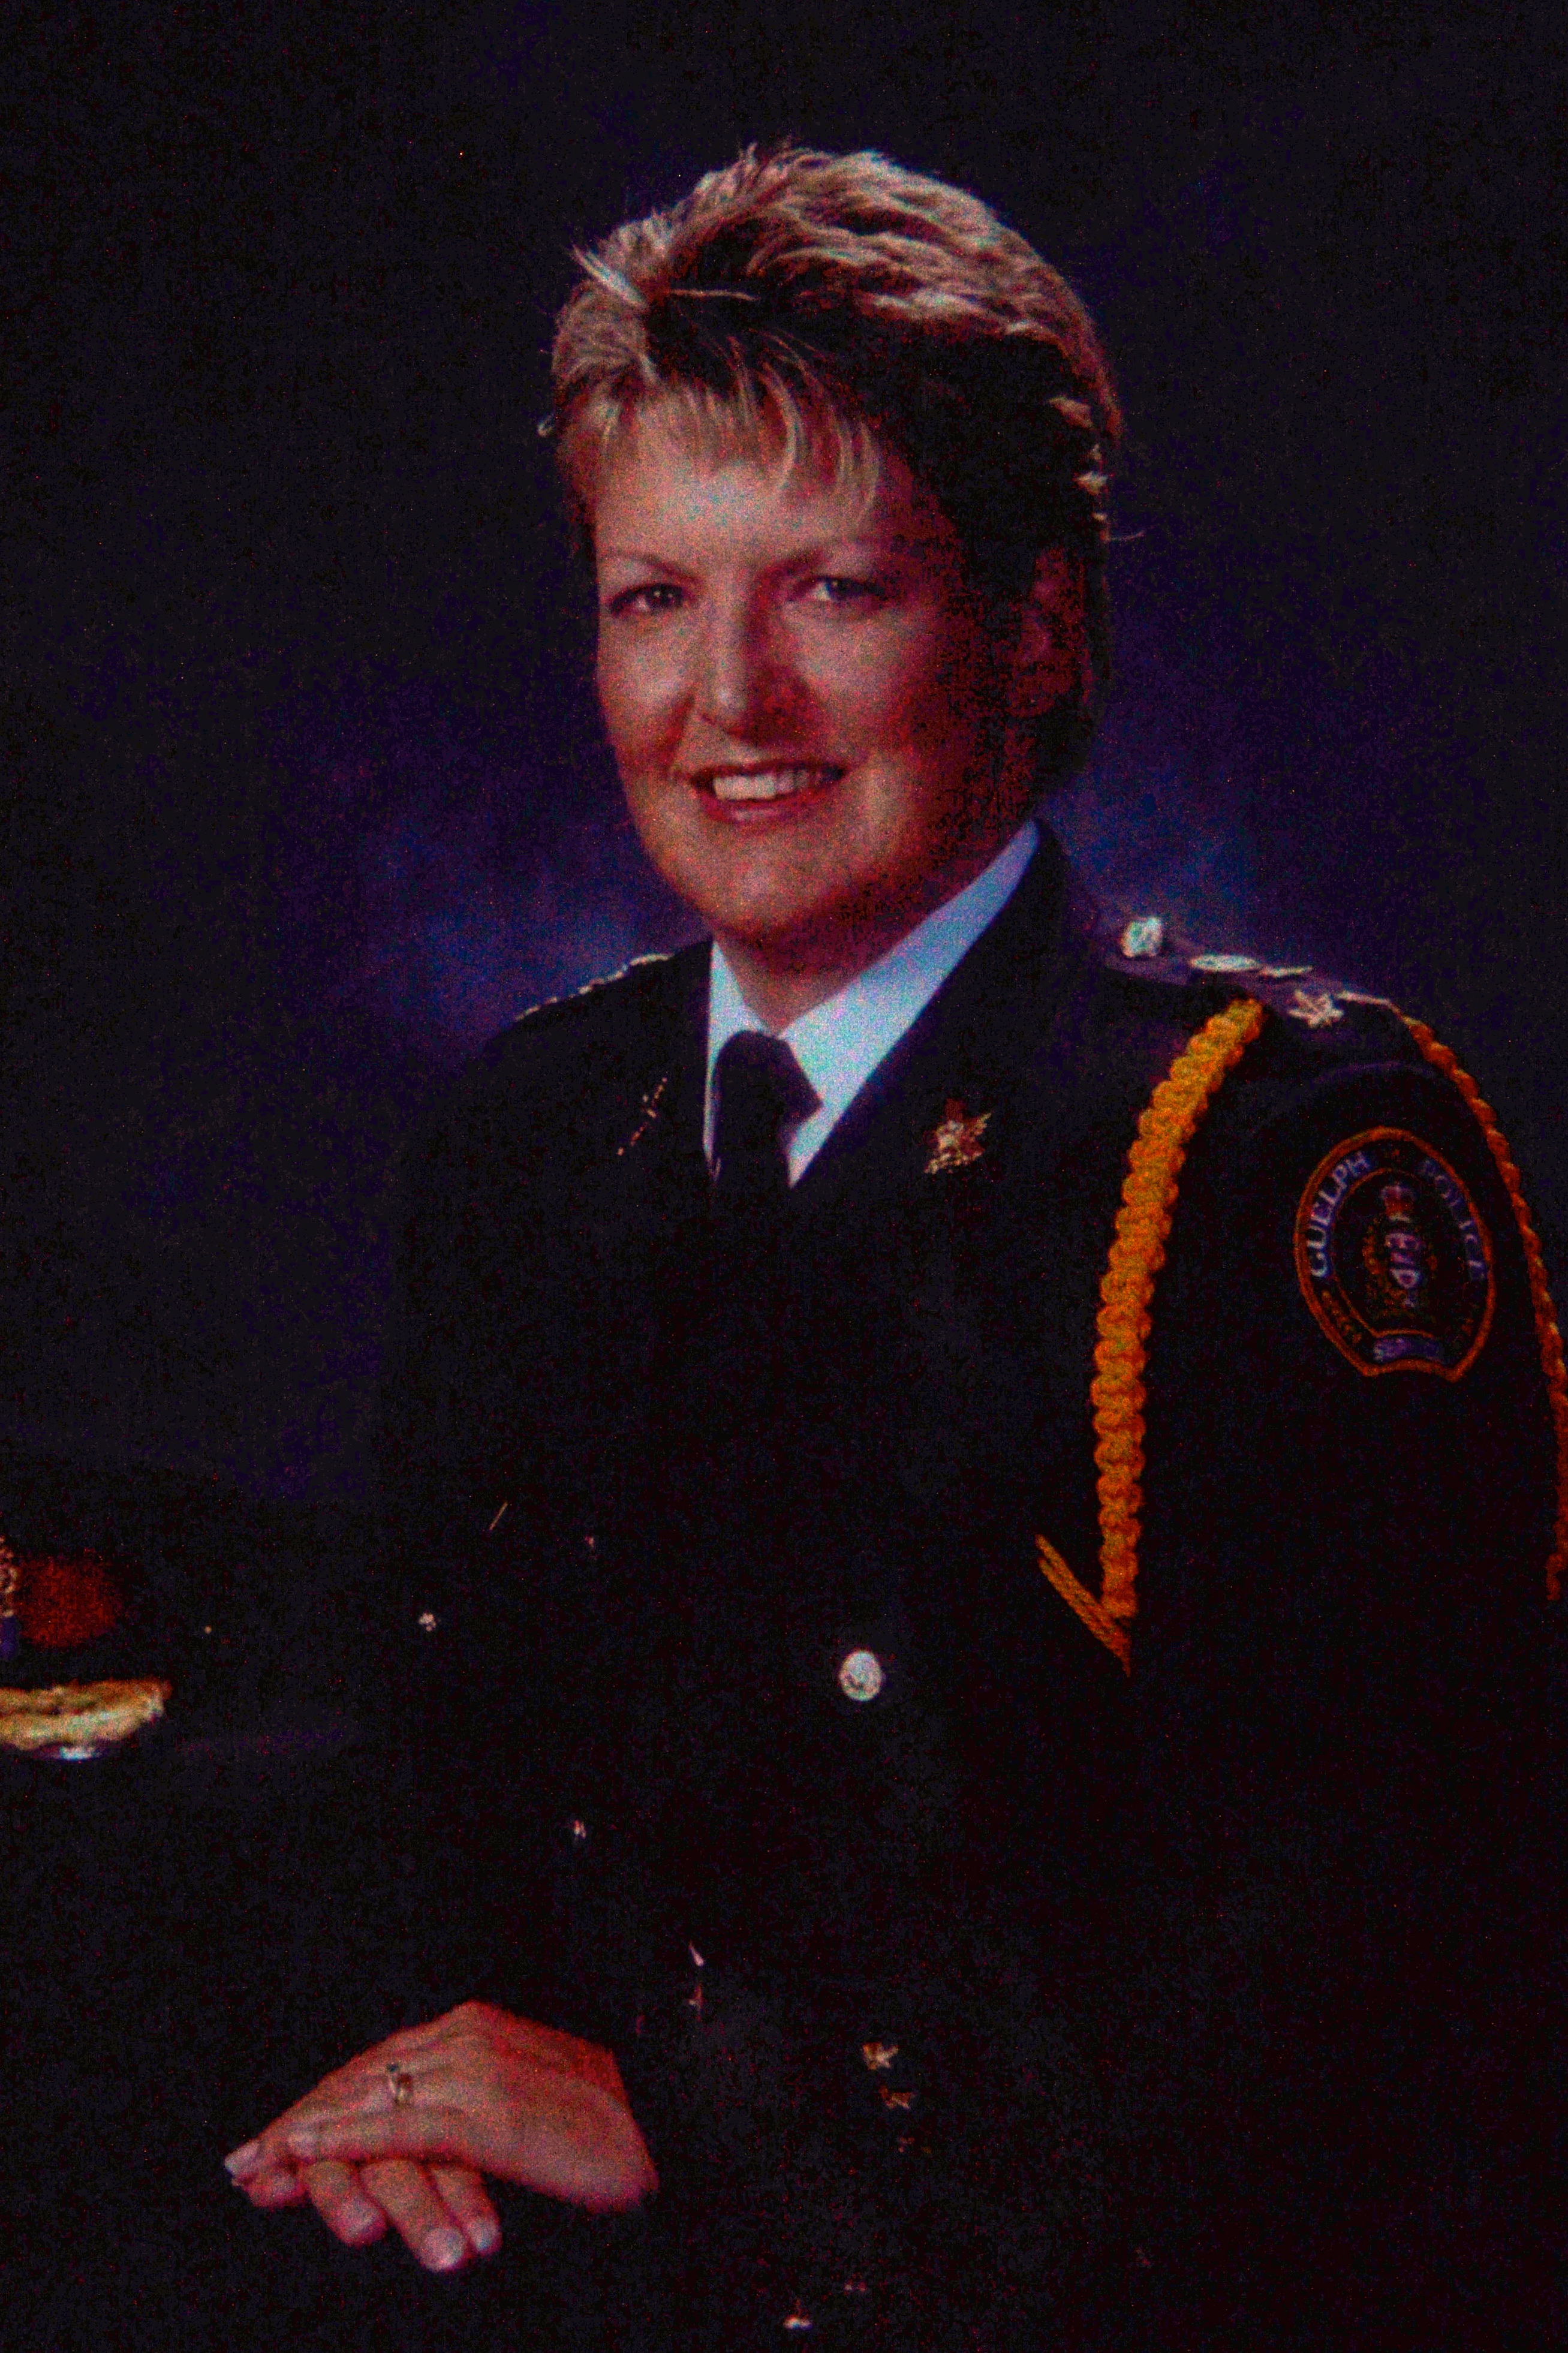 Photo of former Chief of Police Lenna Bradburn